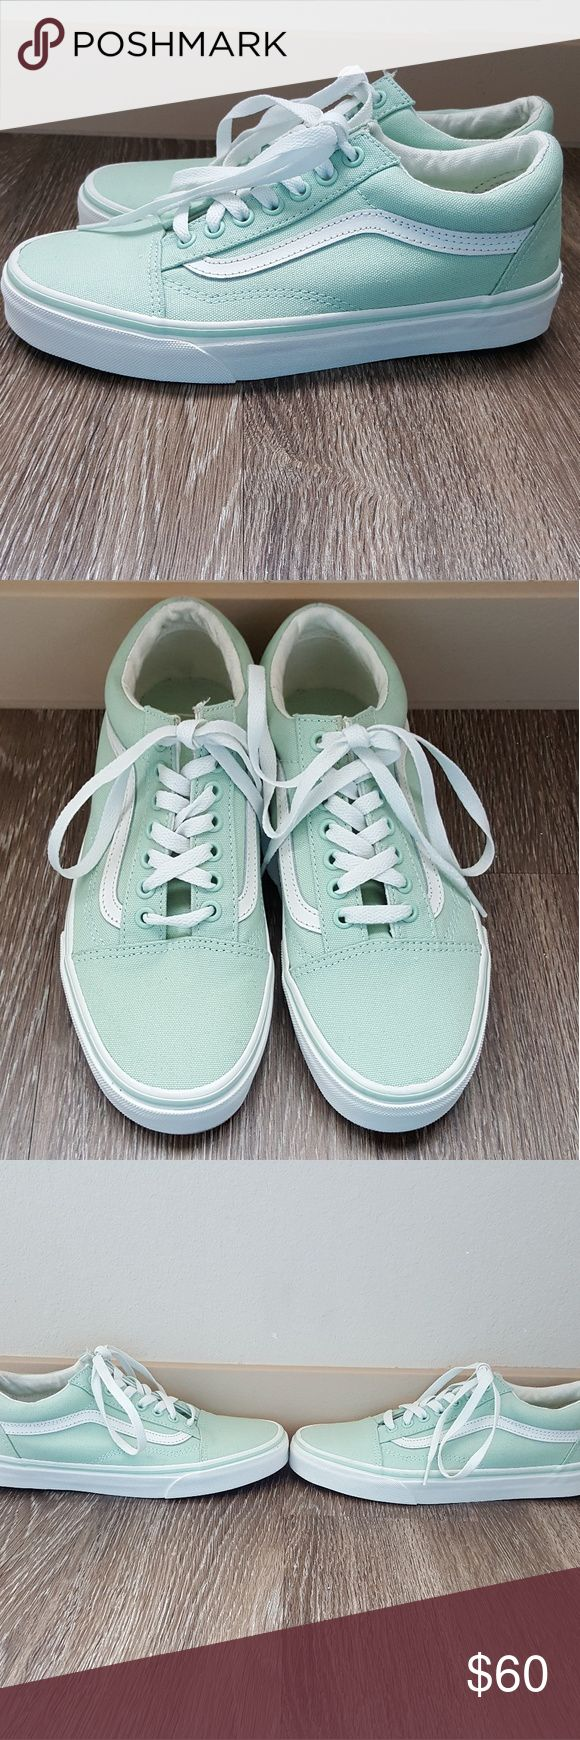 New  Vans old skool sneakers in mint green Vans limited edition  original old skool sneakers in mint green with white stripe brand new without tag used only as store display size 8 womans or mens 6.5 this is the perfect summer sneakers they are the classic look you love with a splash of pastel color fpr summer! Vans Shoes Sneakers